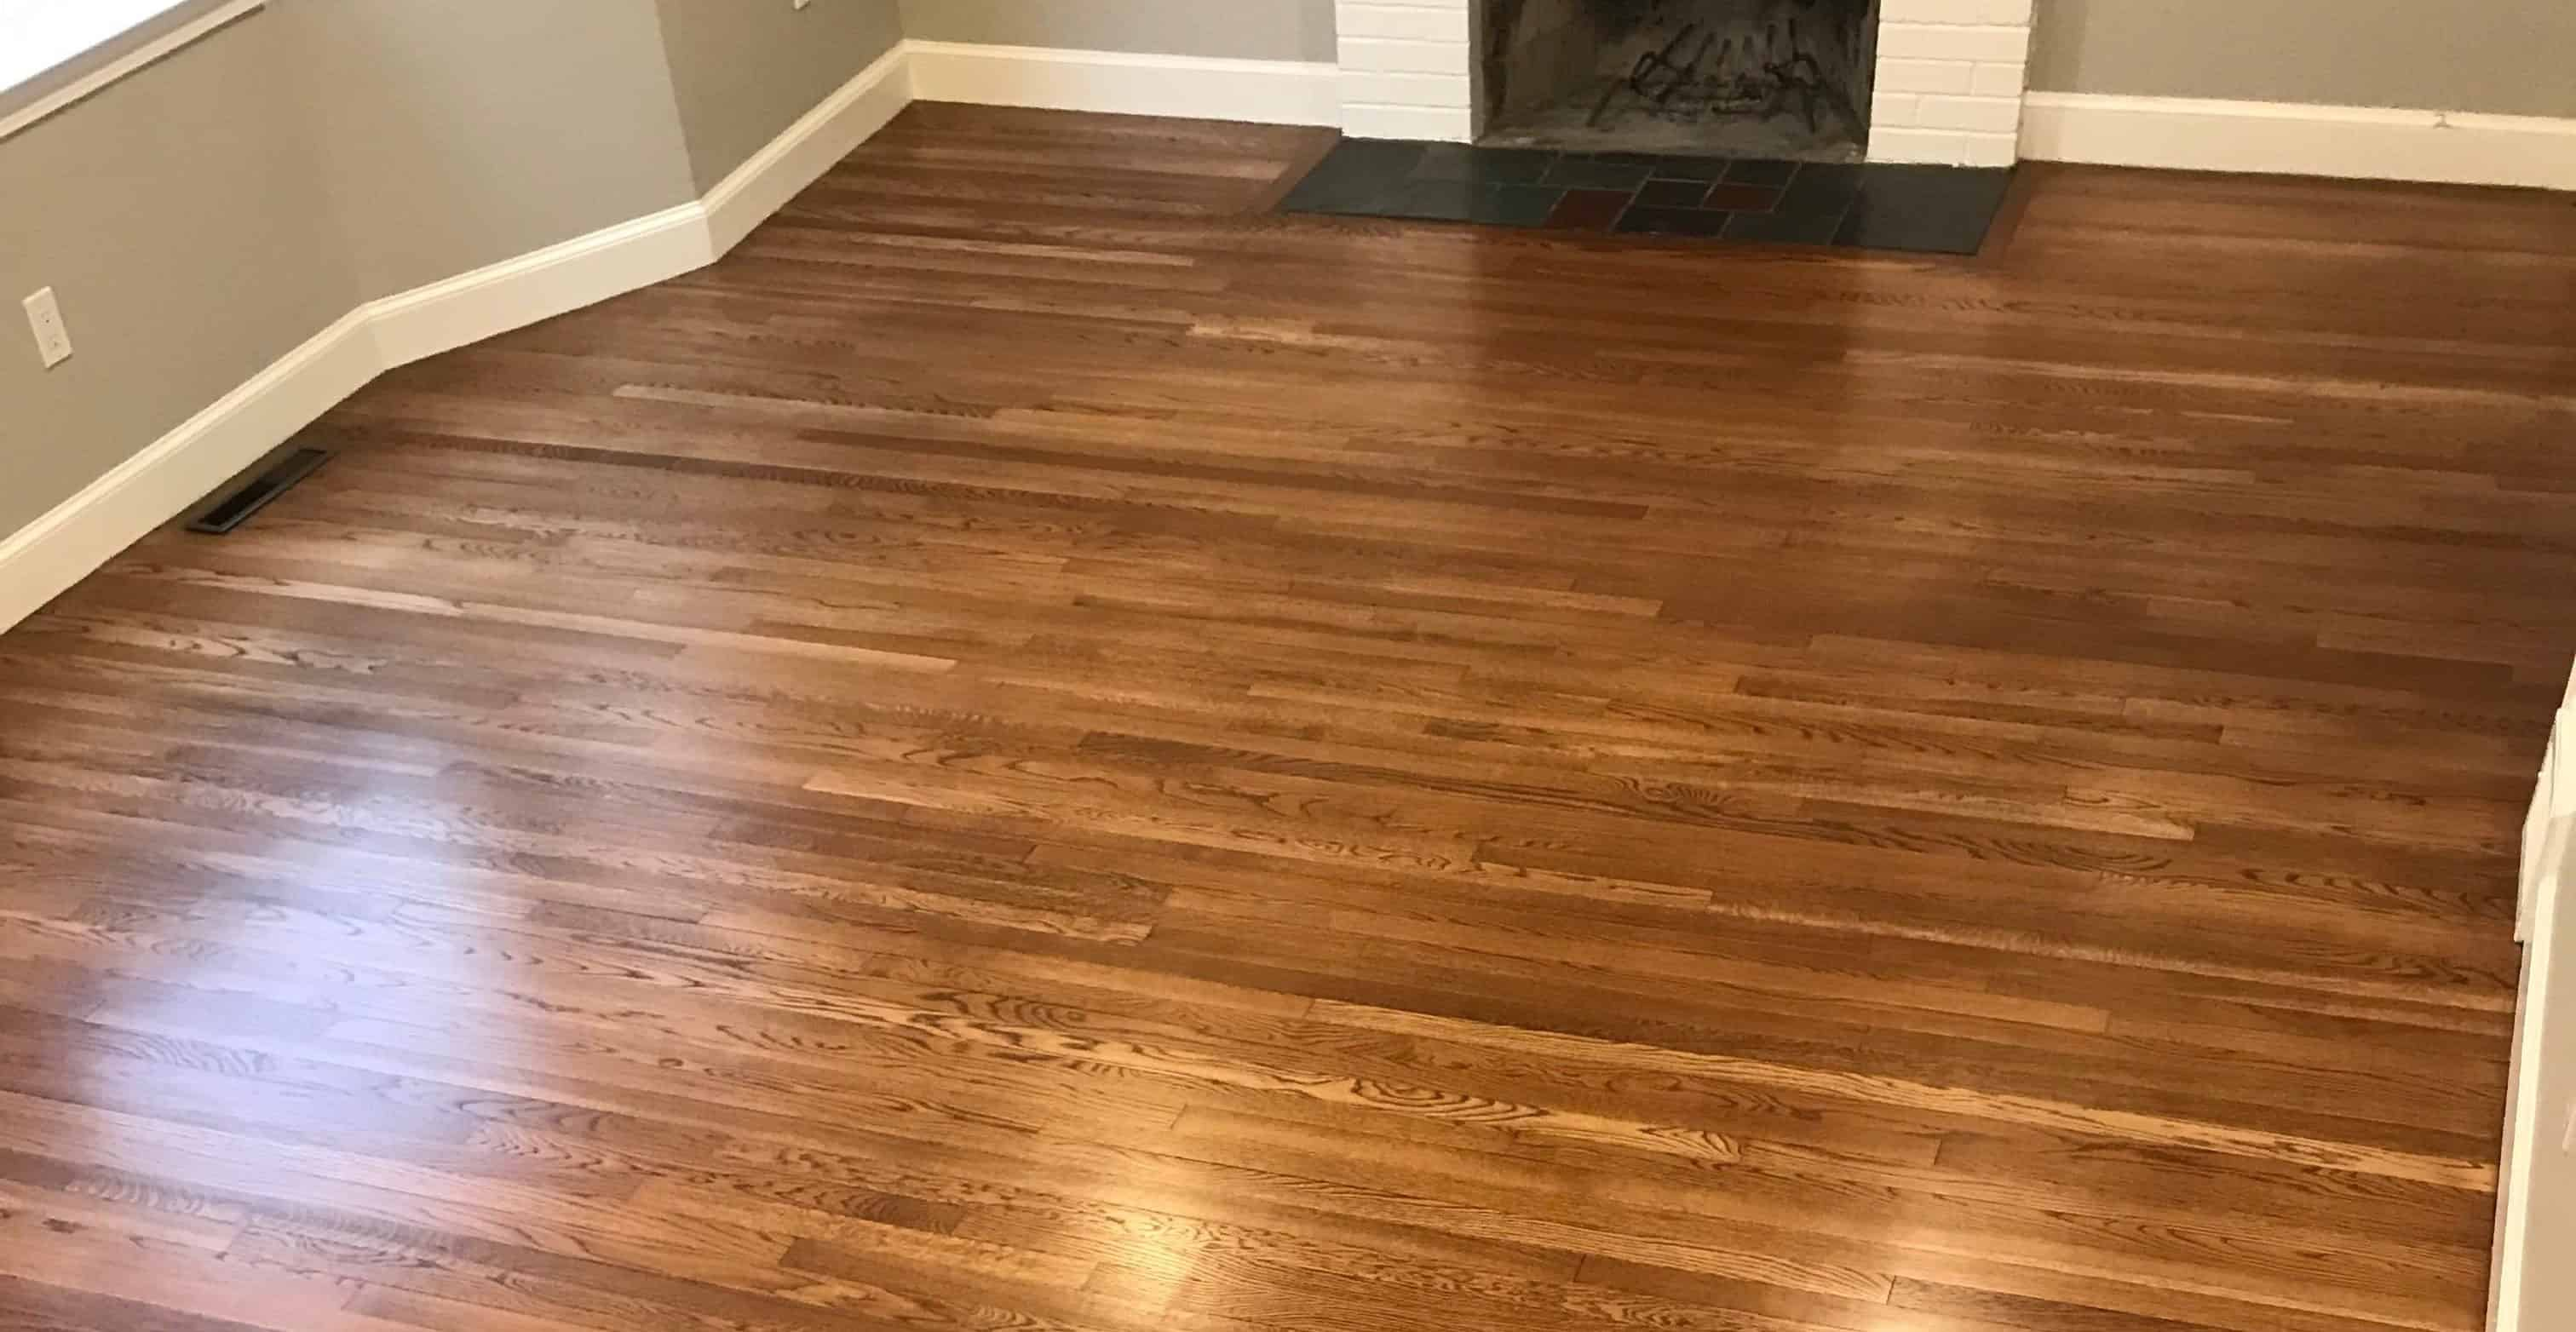 How To Deep Clean Hardwood Floors 5 Simple Steps Prudent Reviews,Coolest Biggest Treehouse In The World